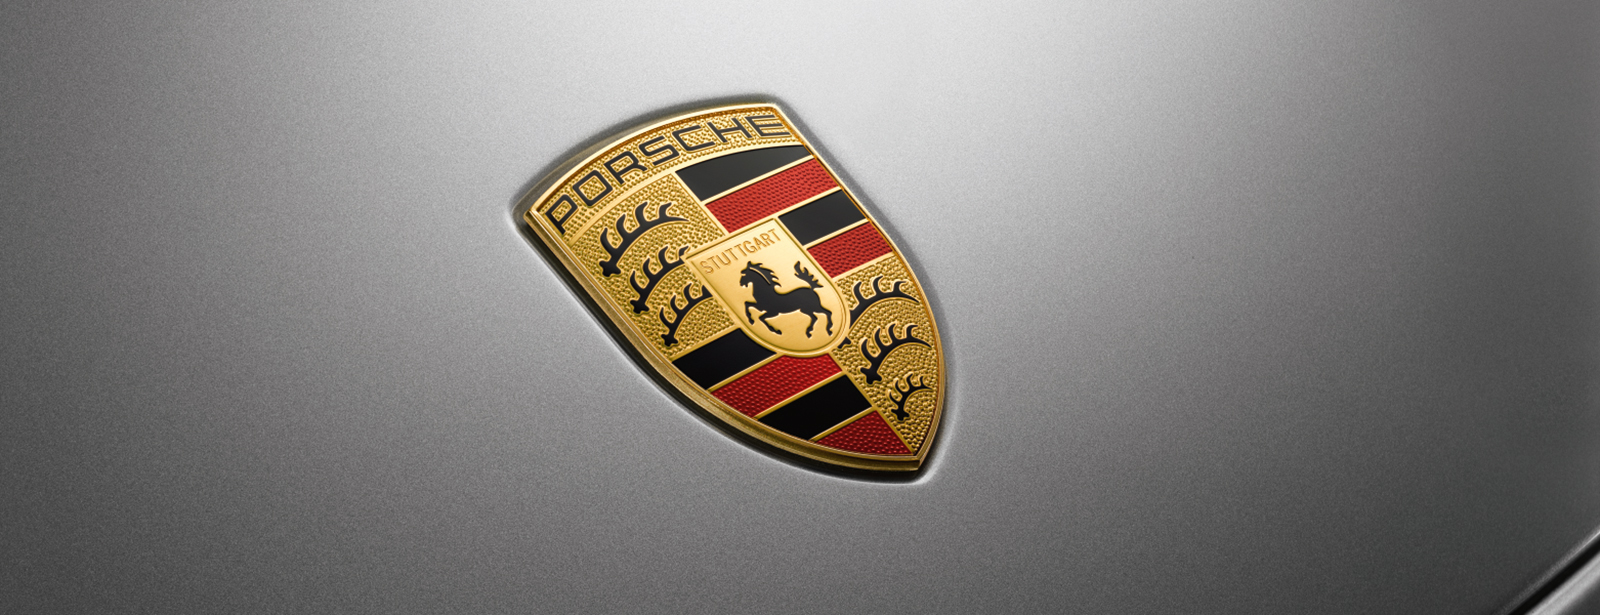 Porsche Key Account